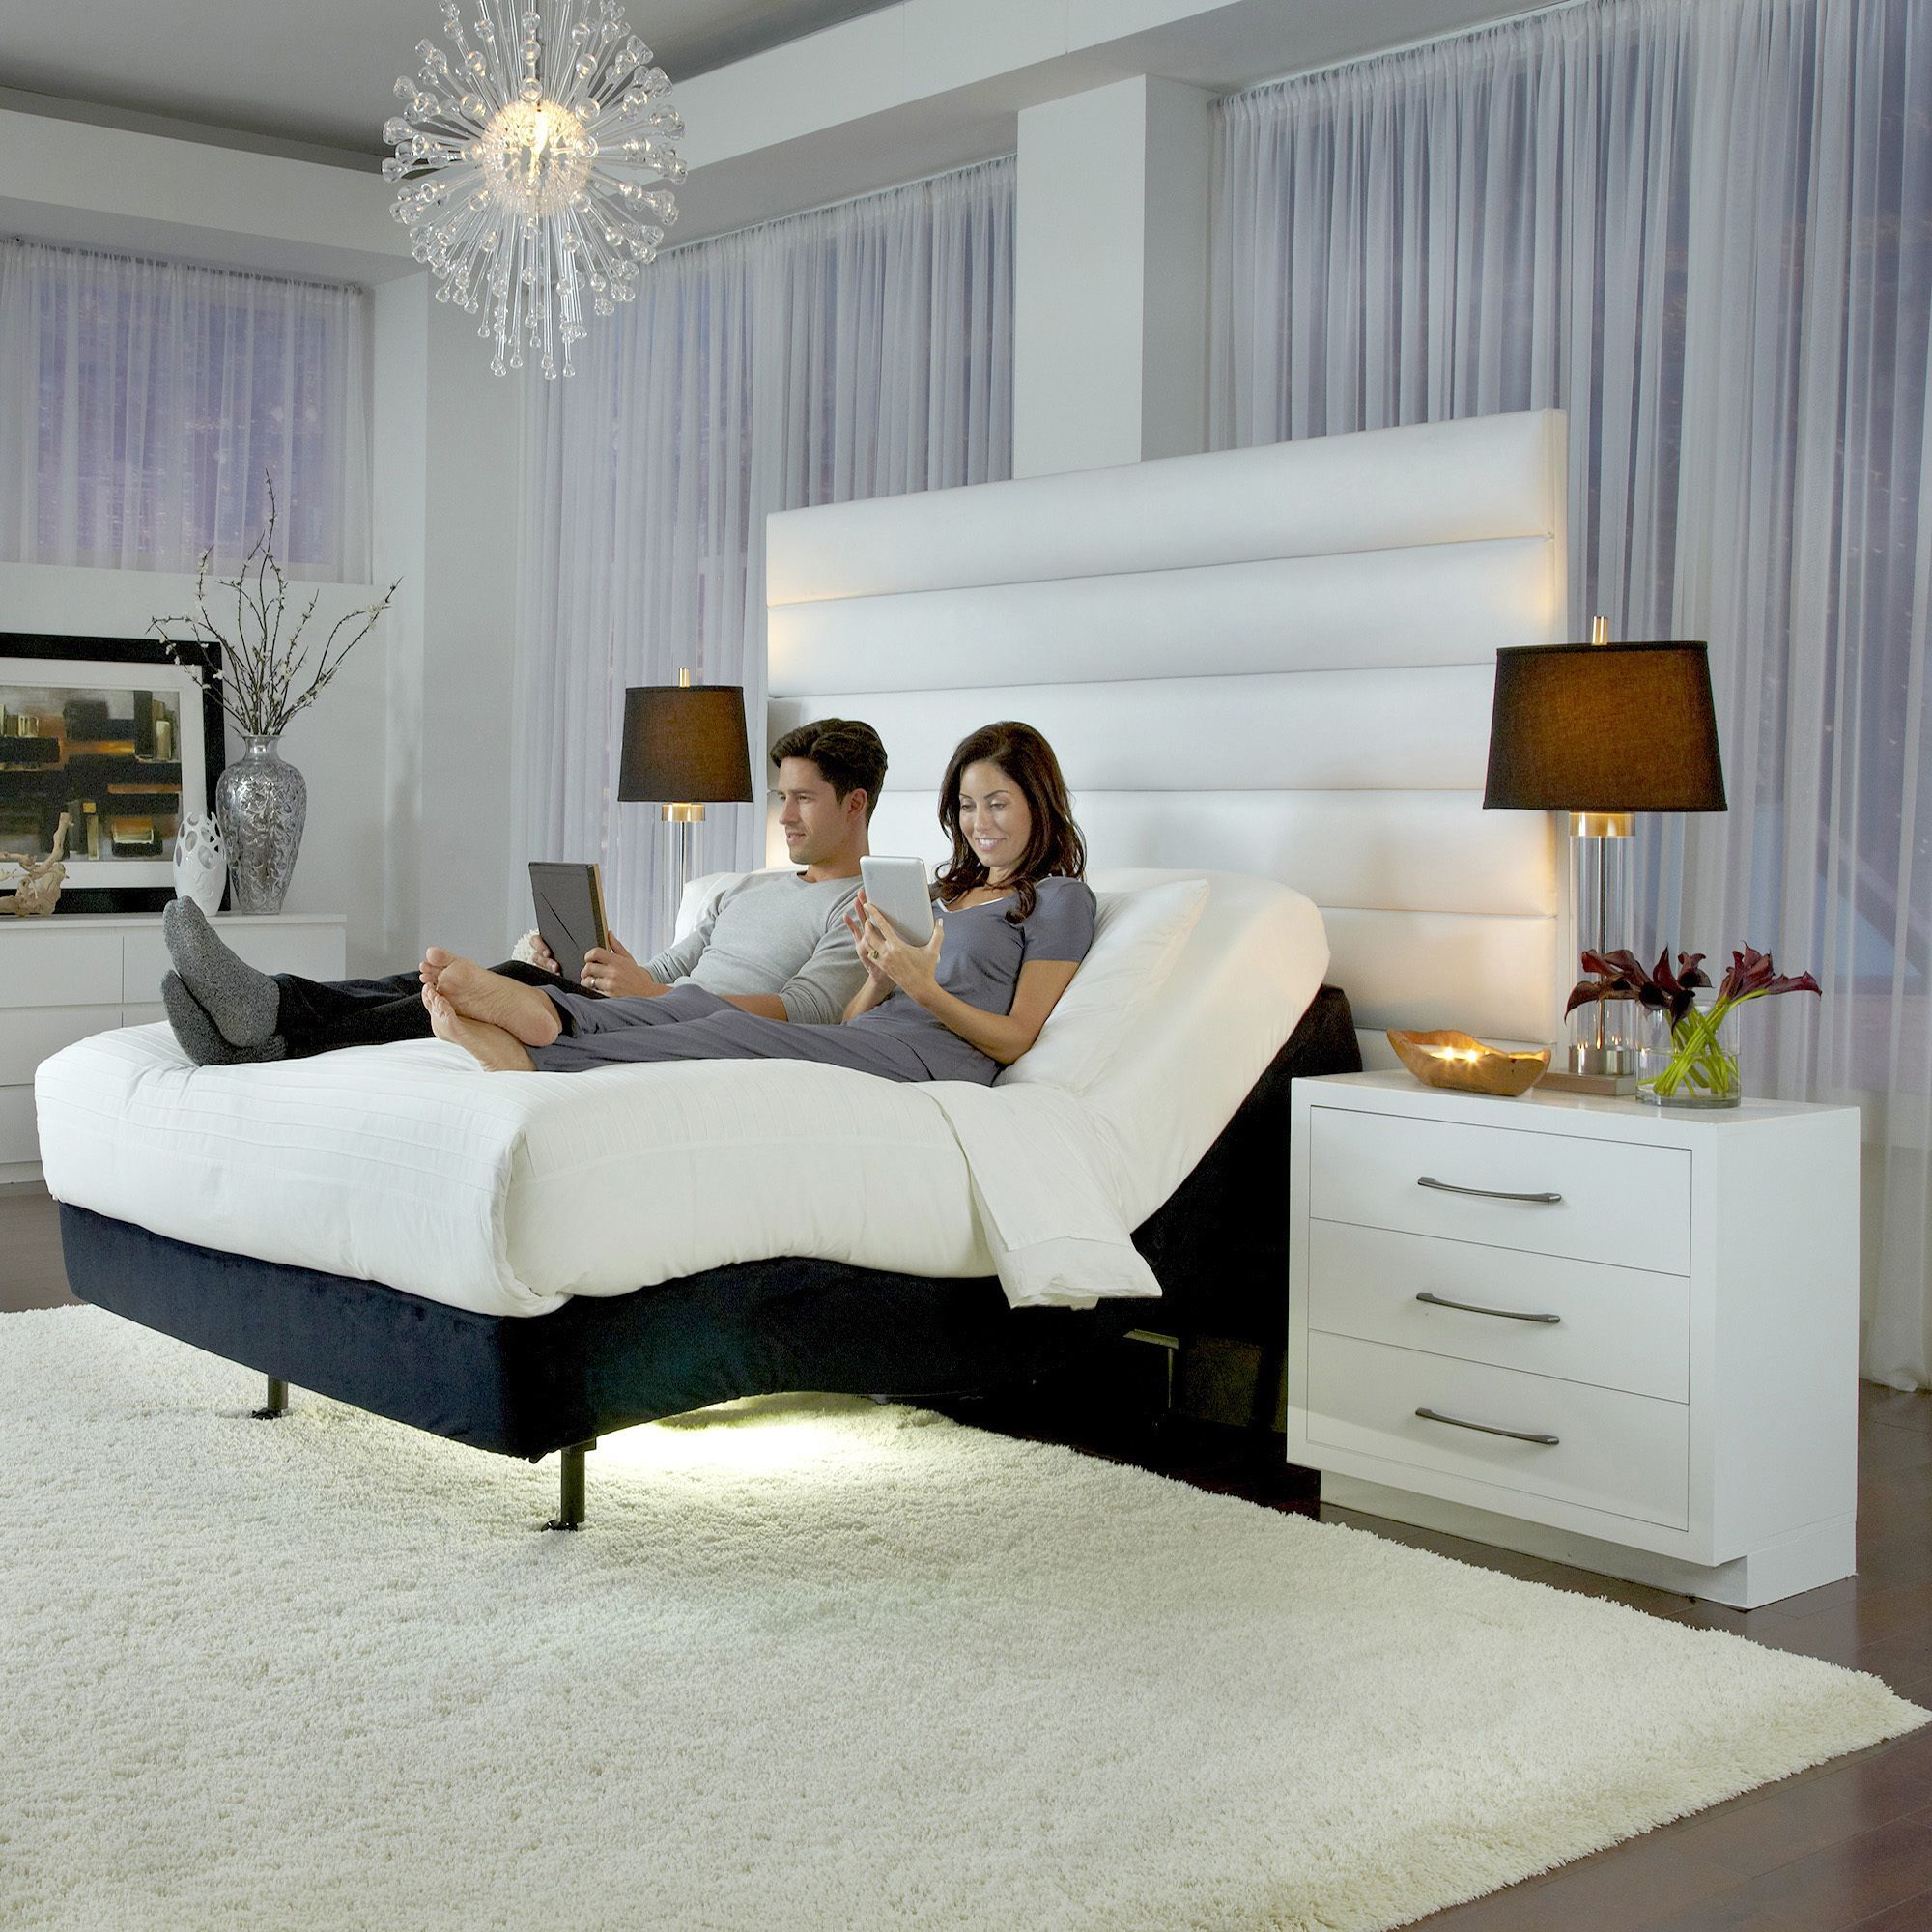 Fashion Bed Group P-232 Furniture Style Adjustable Bed Base with ...